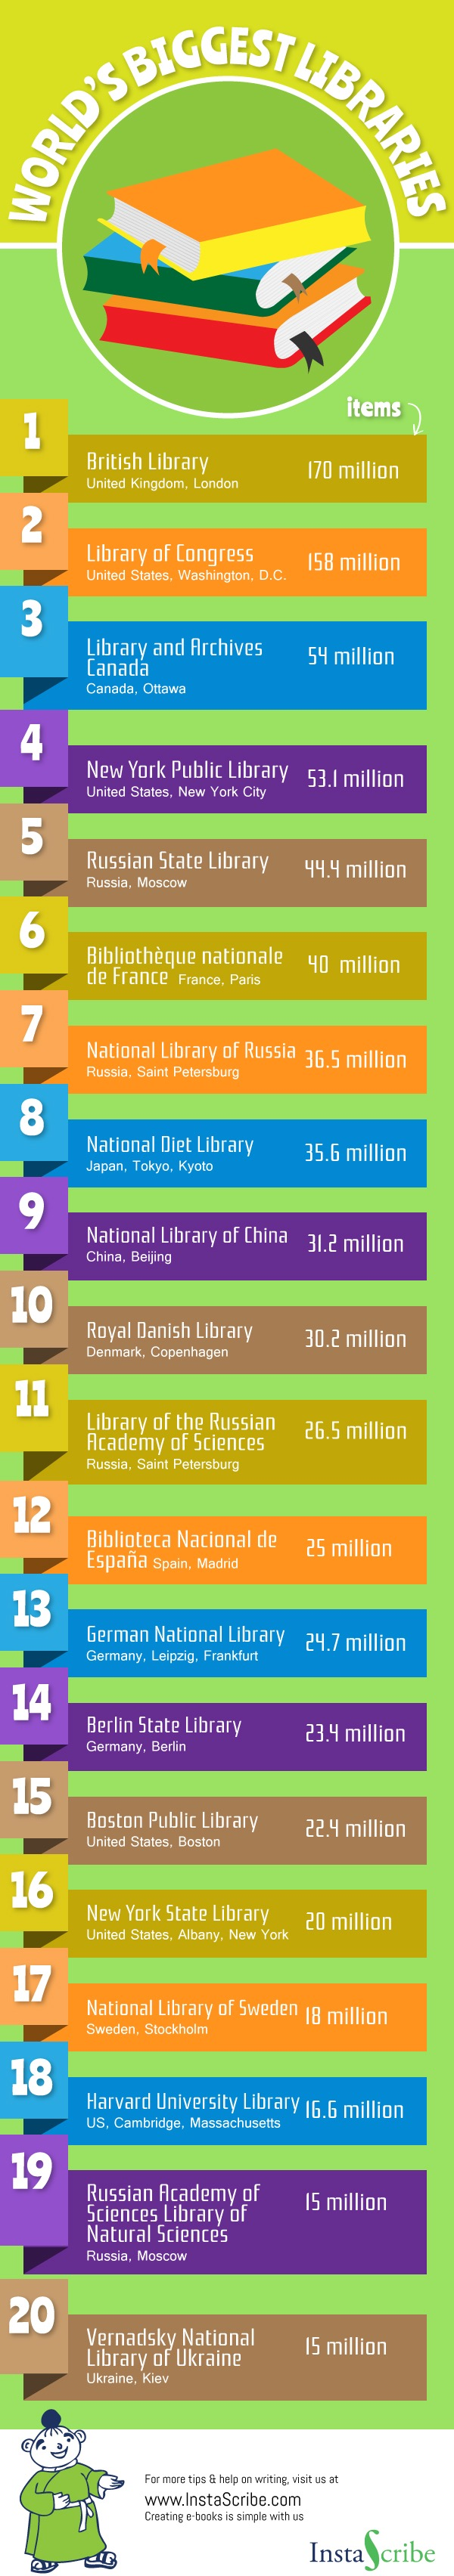 The biggest #libraries in the world #infographic